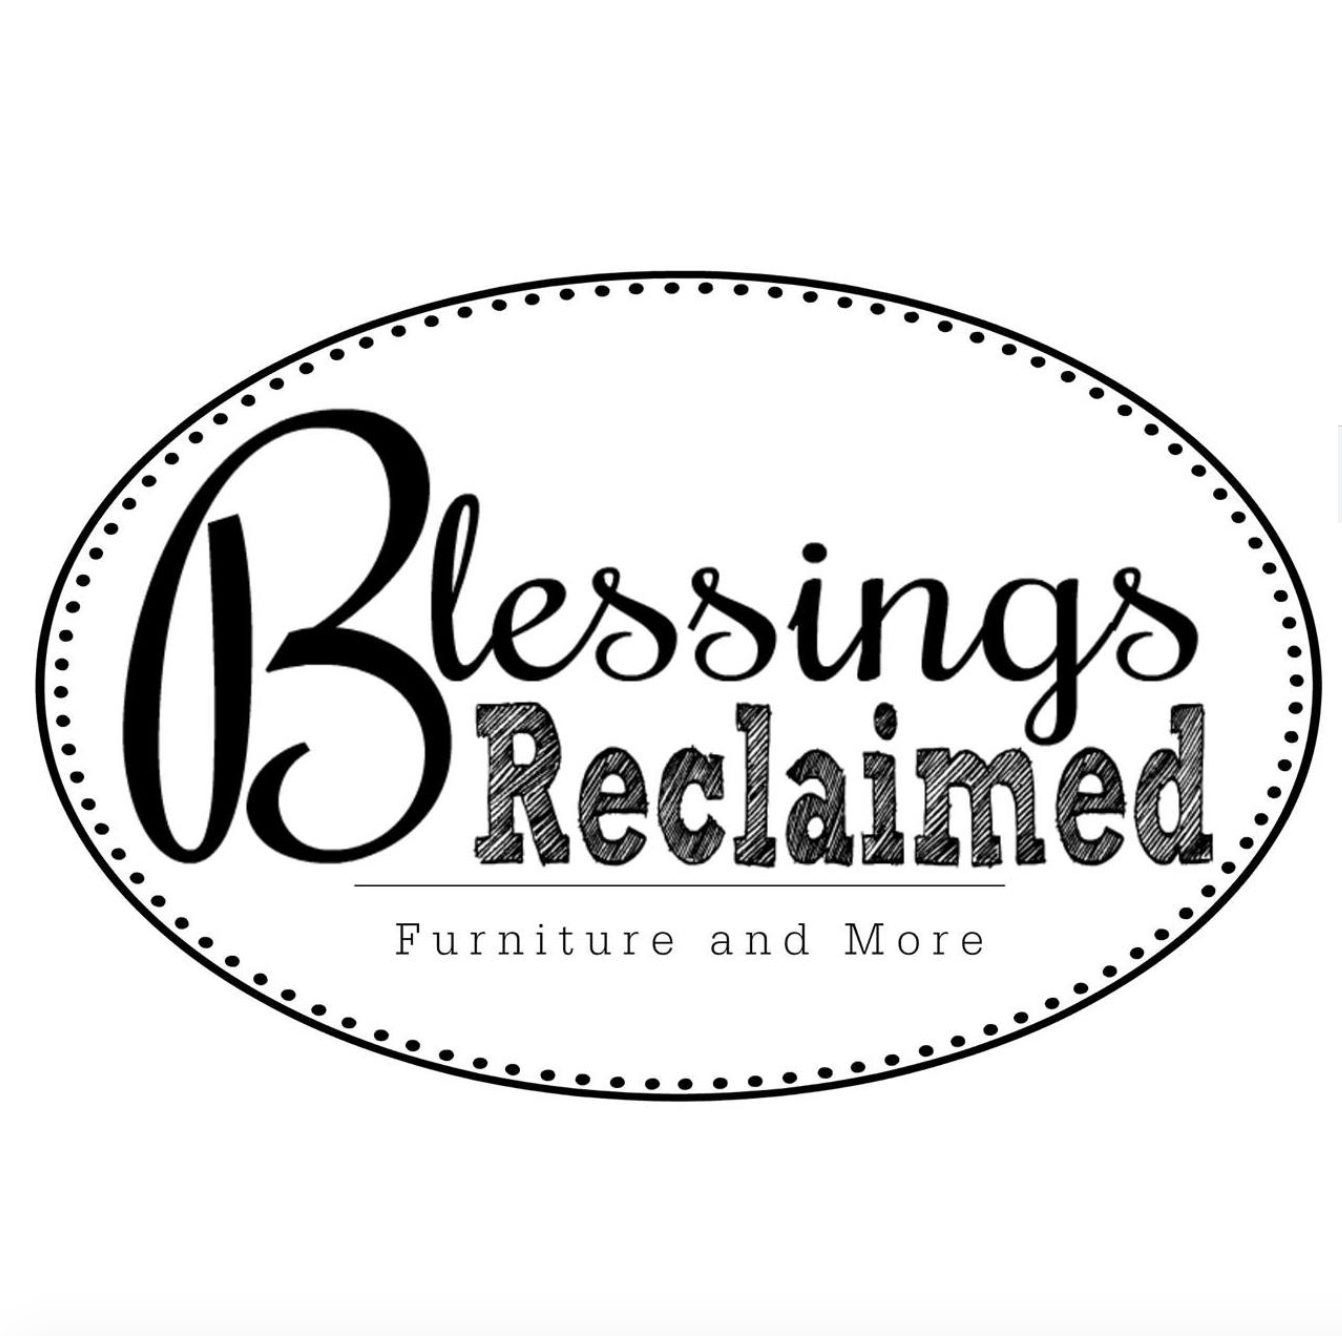 BLESSINGS RECLAIMED - We're Kim and Jenna, we have a vision to create beautiful pieces of furniture and home decor from reclaimed items!